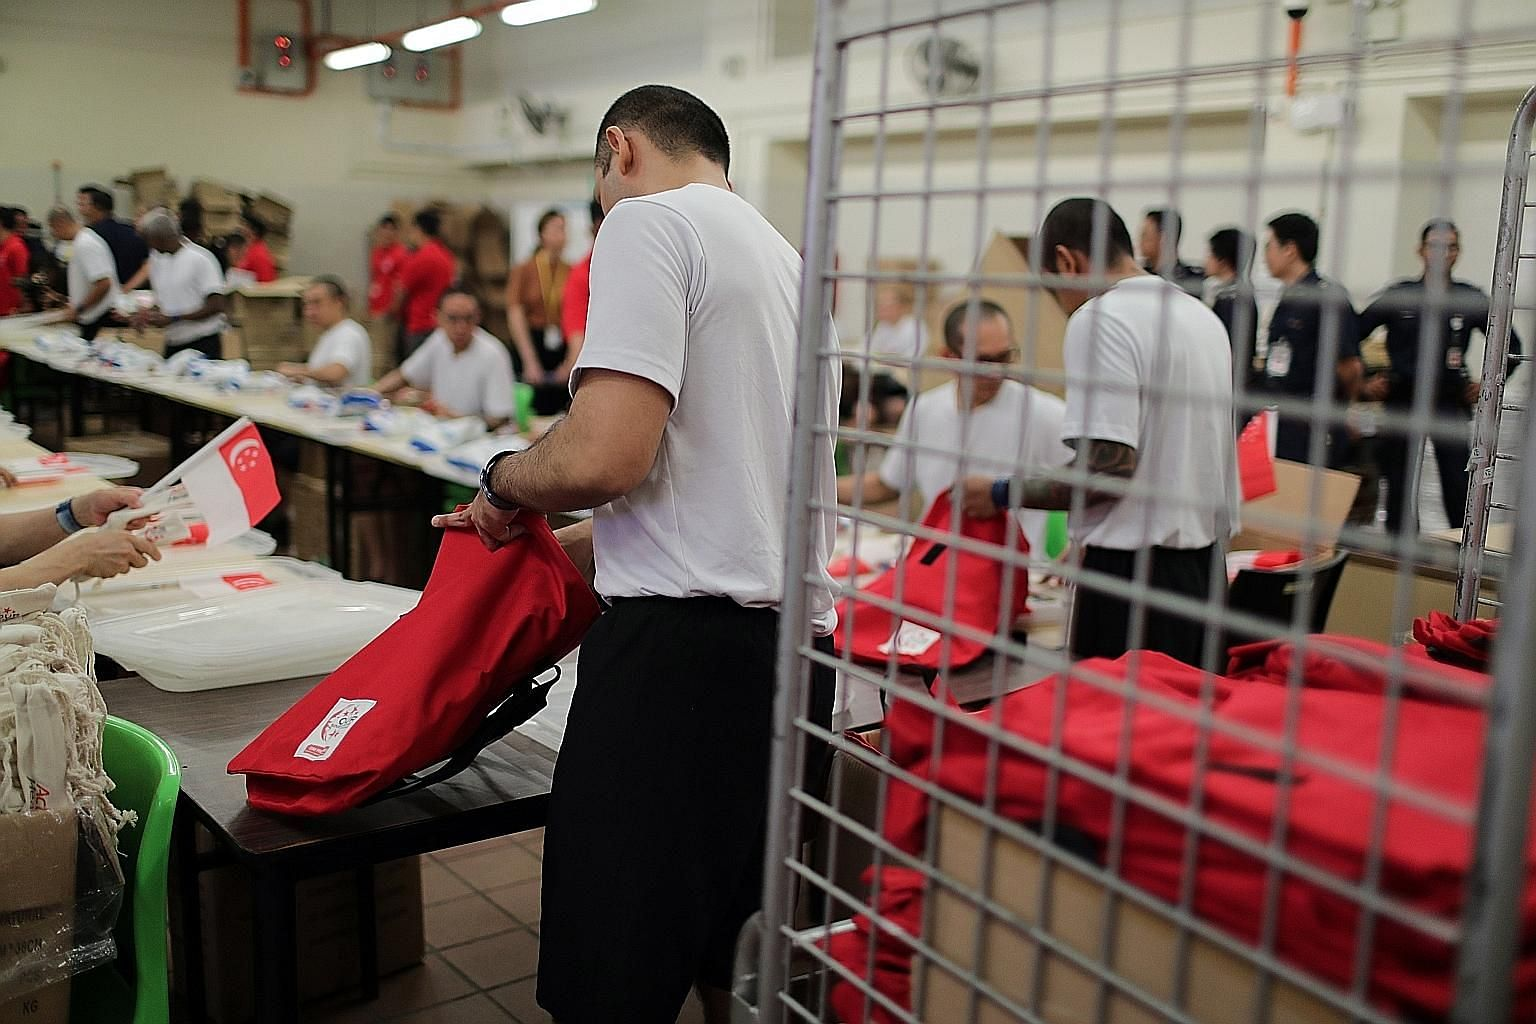 For the past three weeks, 30 Changi Prison inmates have been packing National Day Parade funpacks, as a way to give back to society. They volunteered for the project and are working to pack 50,000 funpacks by the end of this month. It is the first ti